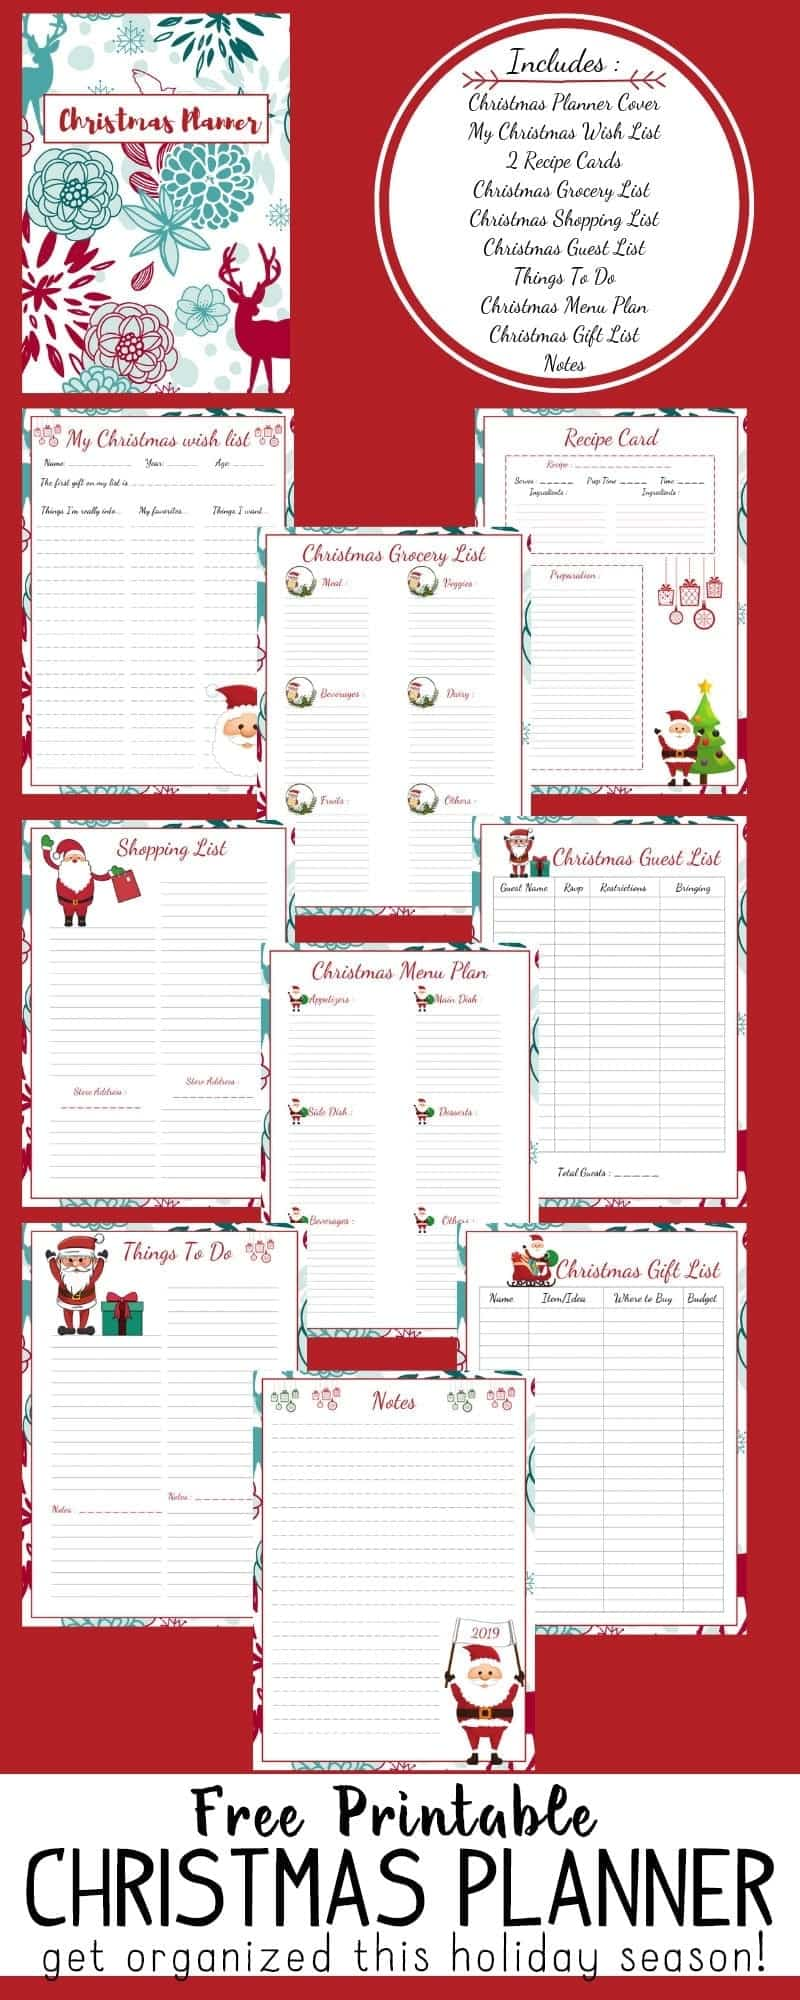 Download this FREE Christmas Planner and get organized for the holidays!